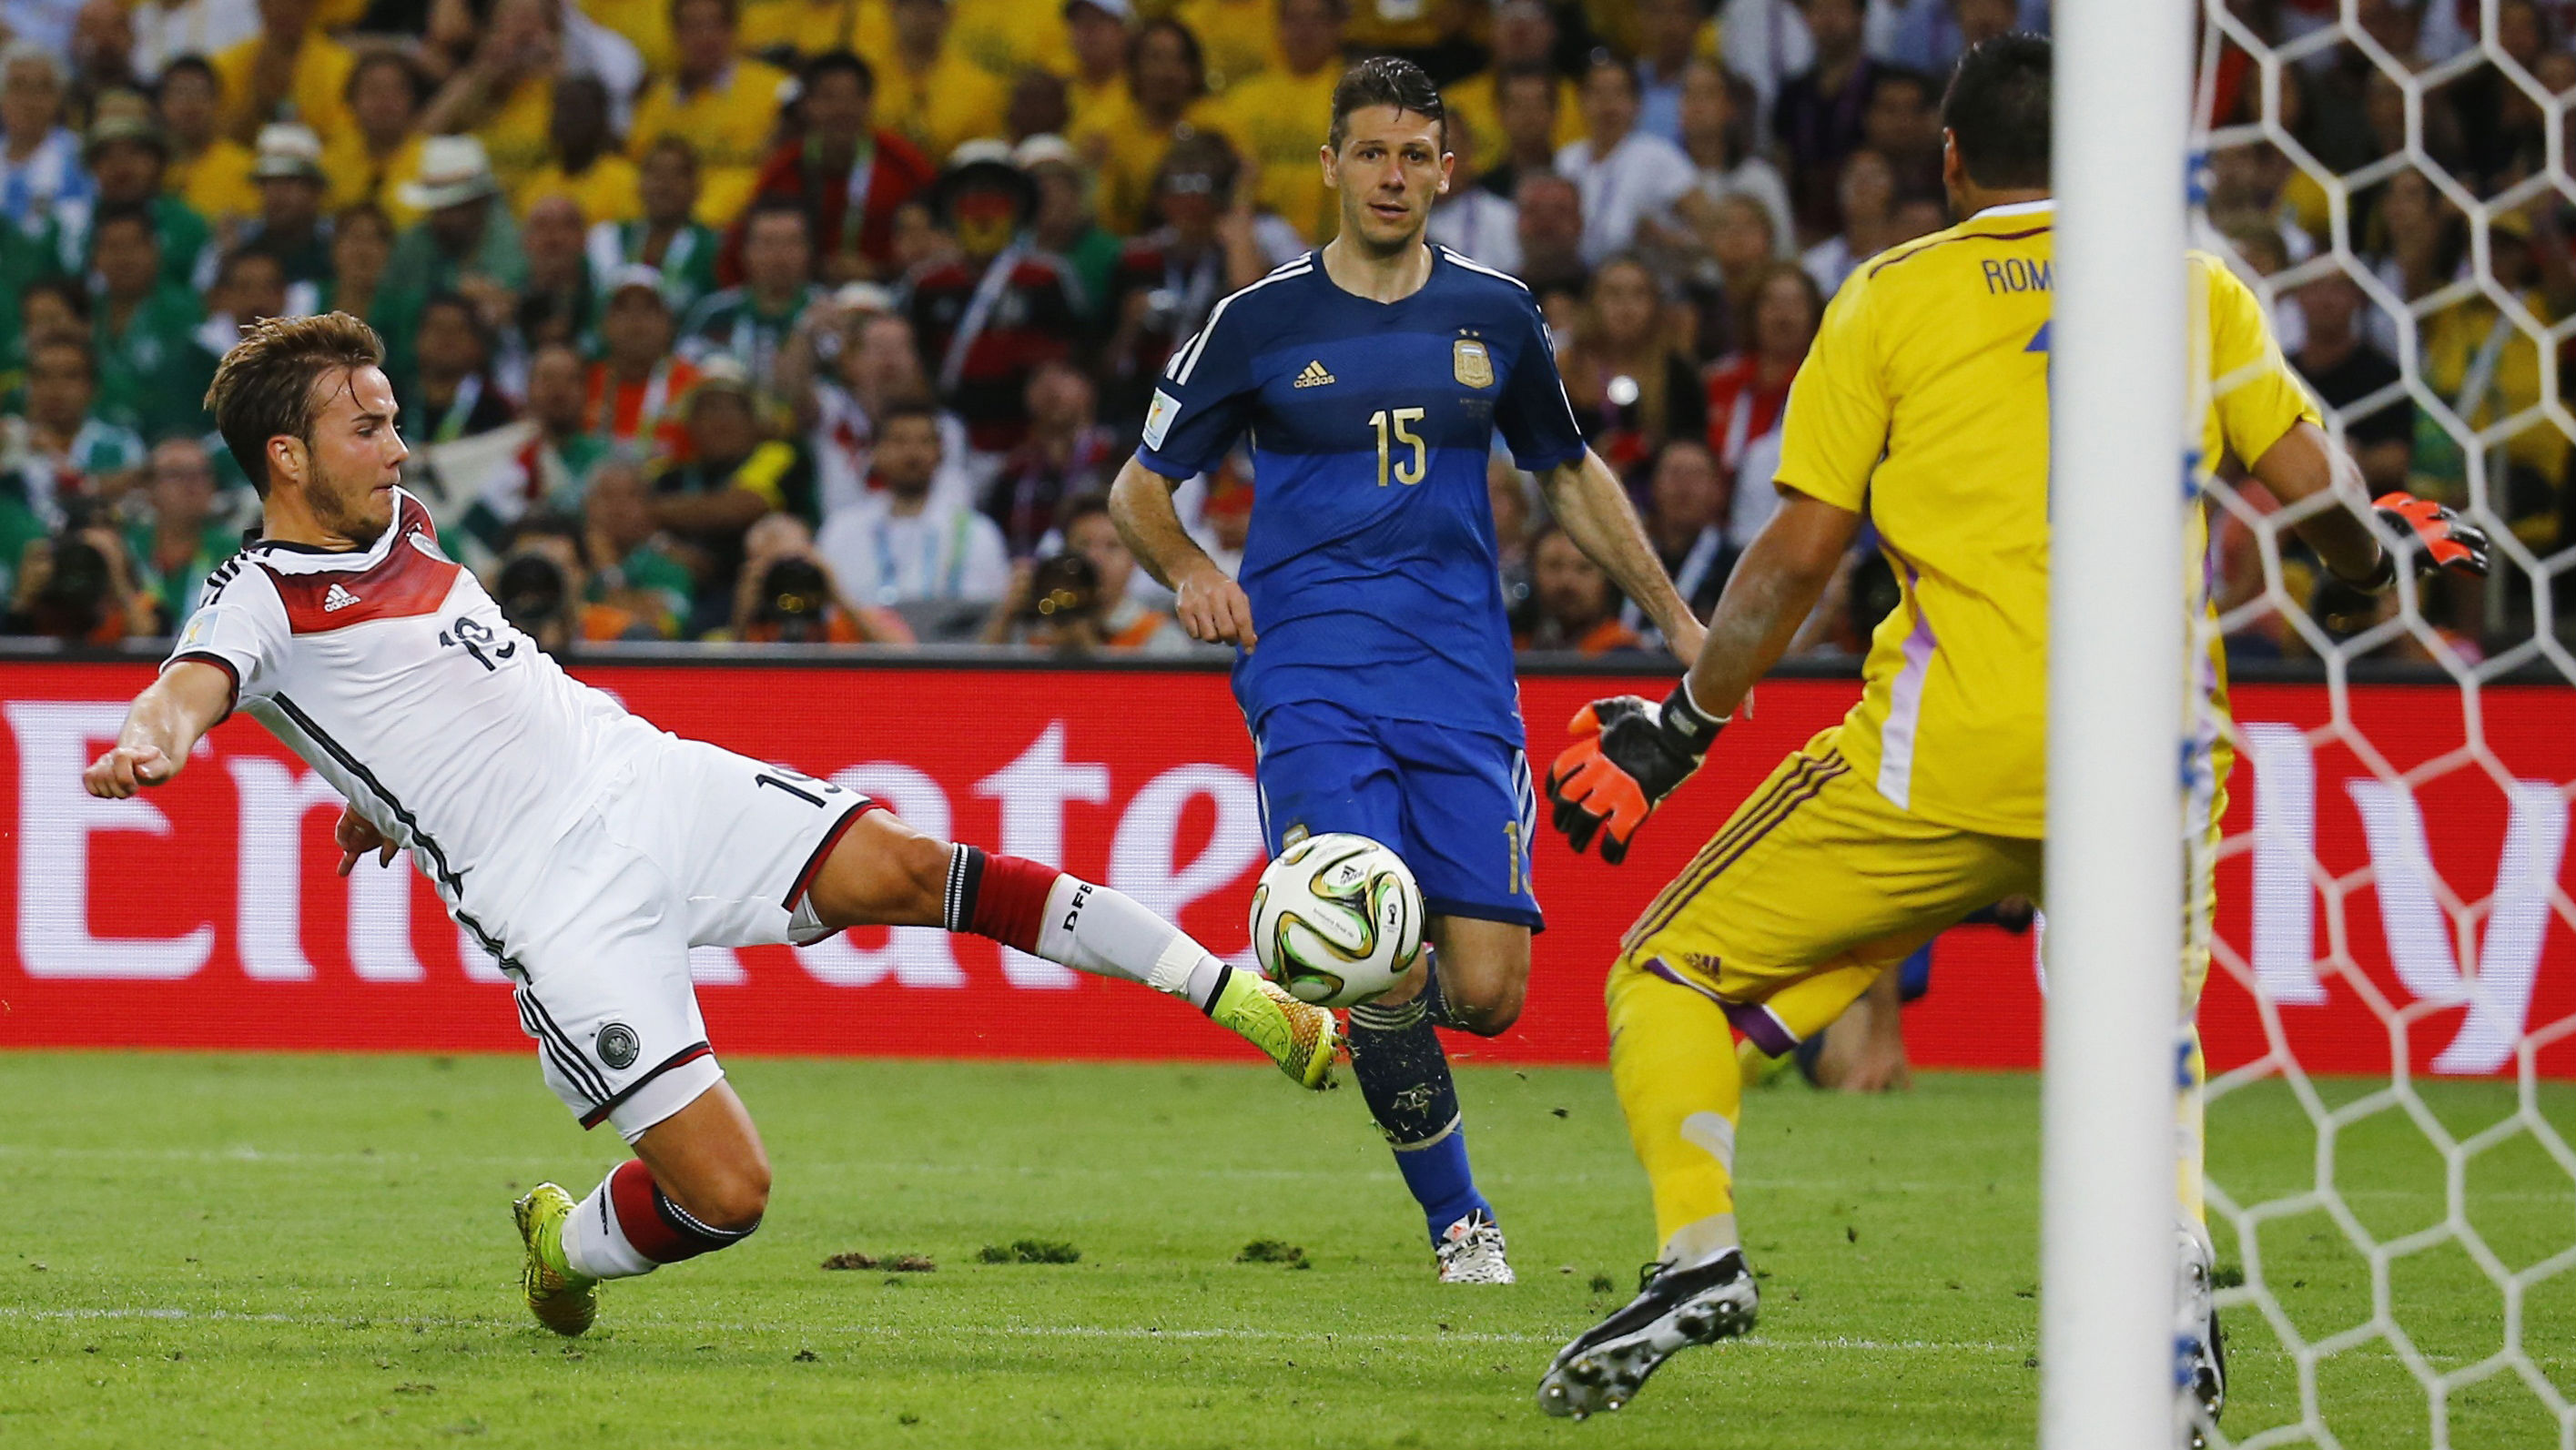 Germany's Mario Goetze shoots to score a goal past Argentina's goalkeeper Sergio Romero during extra time in their 2014 World Cup final at the Maracana stadium in Rio de Janeiro July 13, 2014. REUTERS/Kai Pfaffenbach